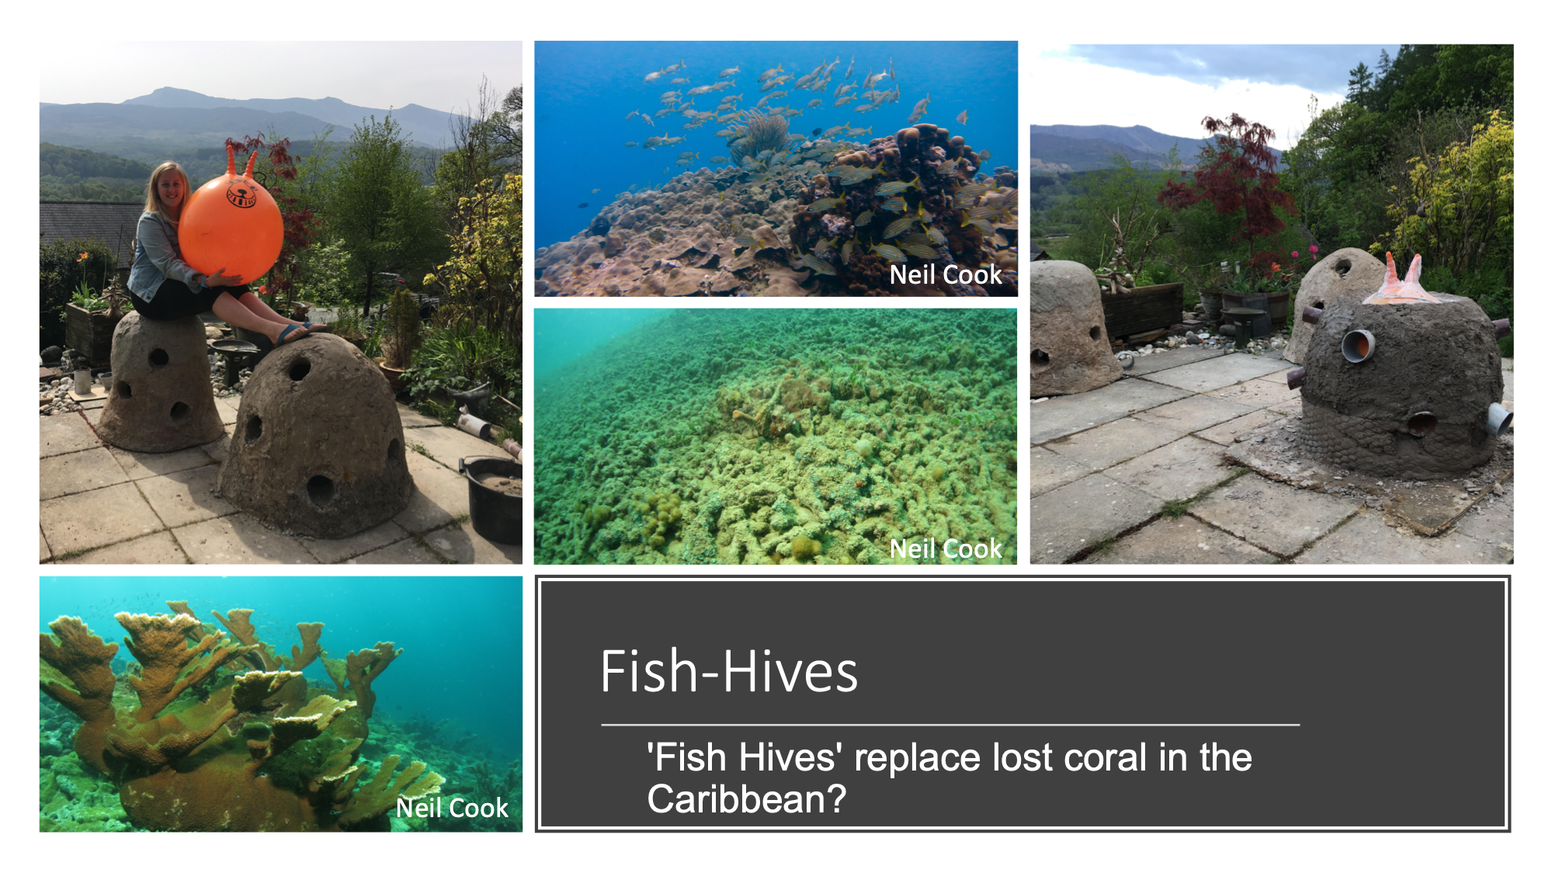 688cad6530b Can 'Fish Hives' replace lost coral in the Caribbean? by Kath ...